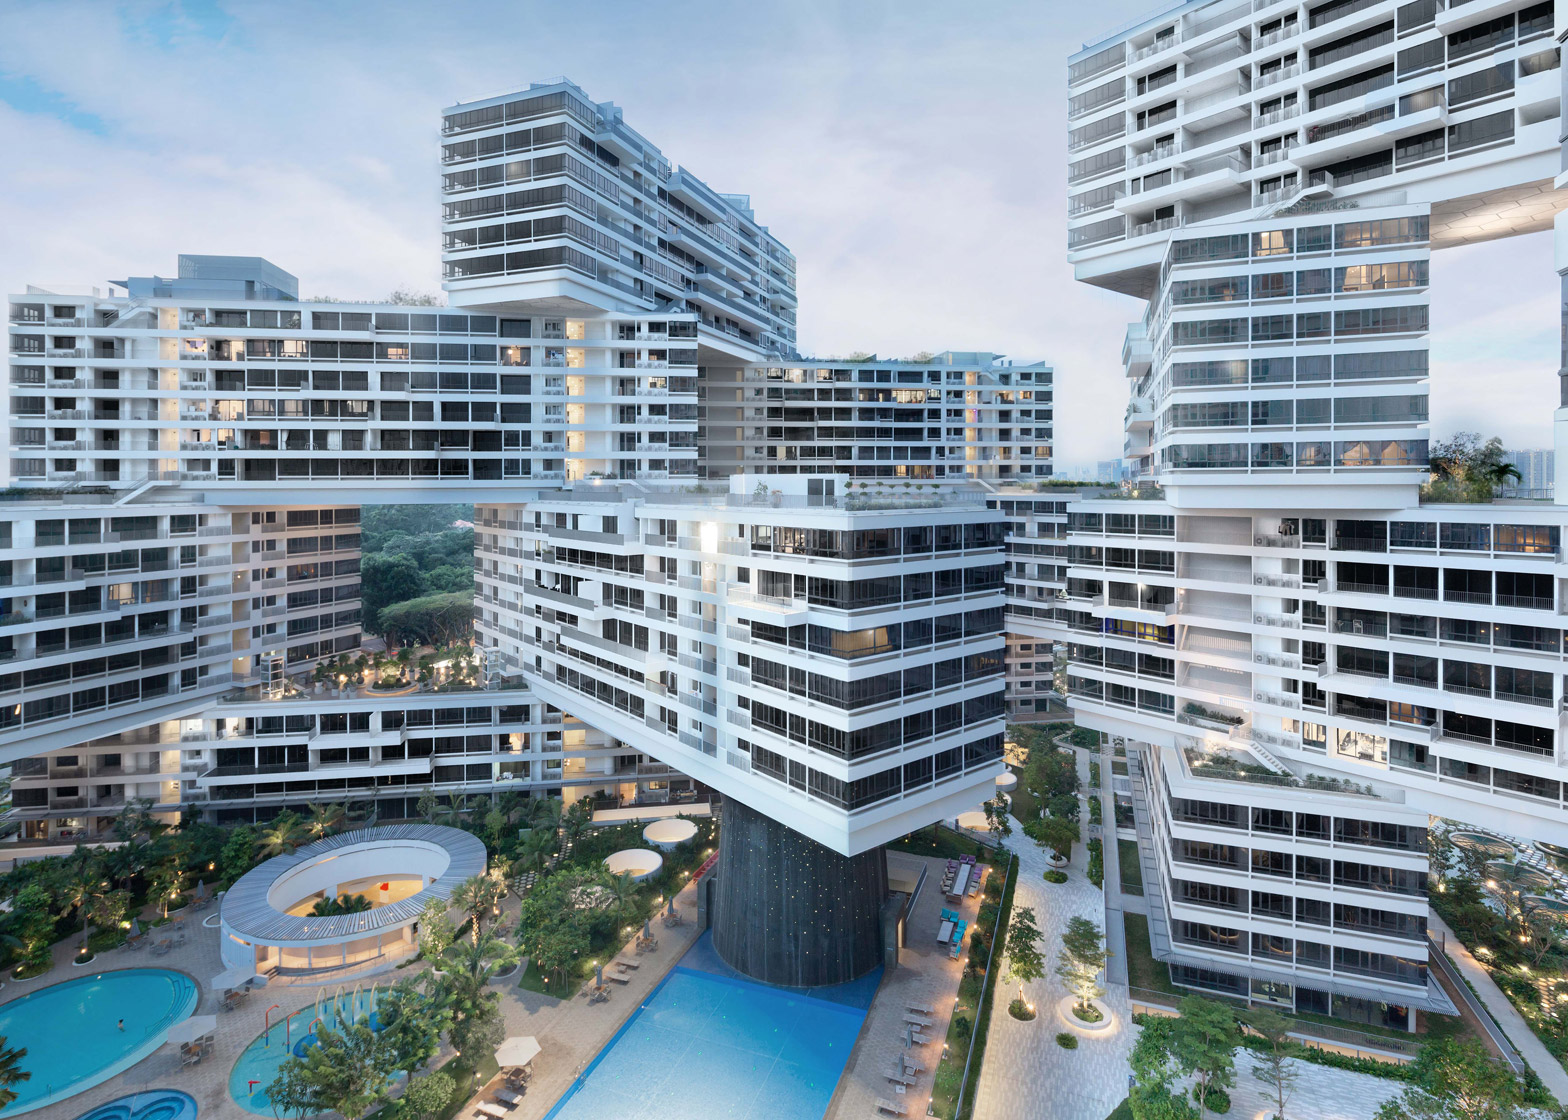 The-Interlace-by-Ole-Scheeren_dezeen_1568_0